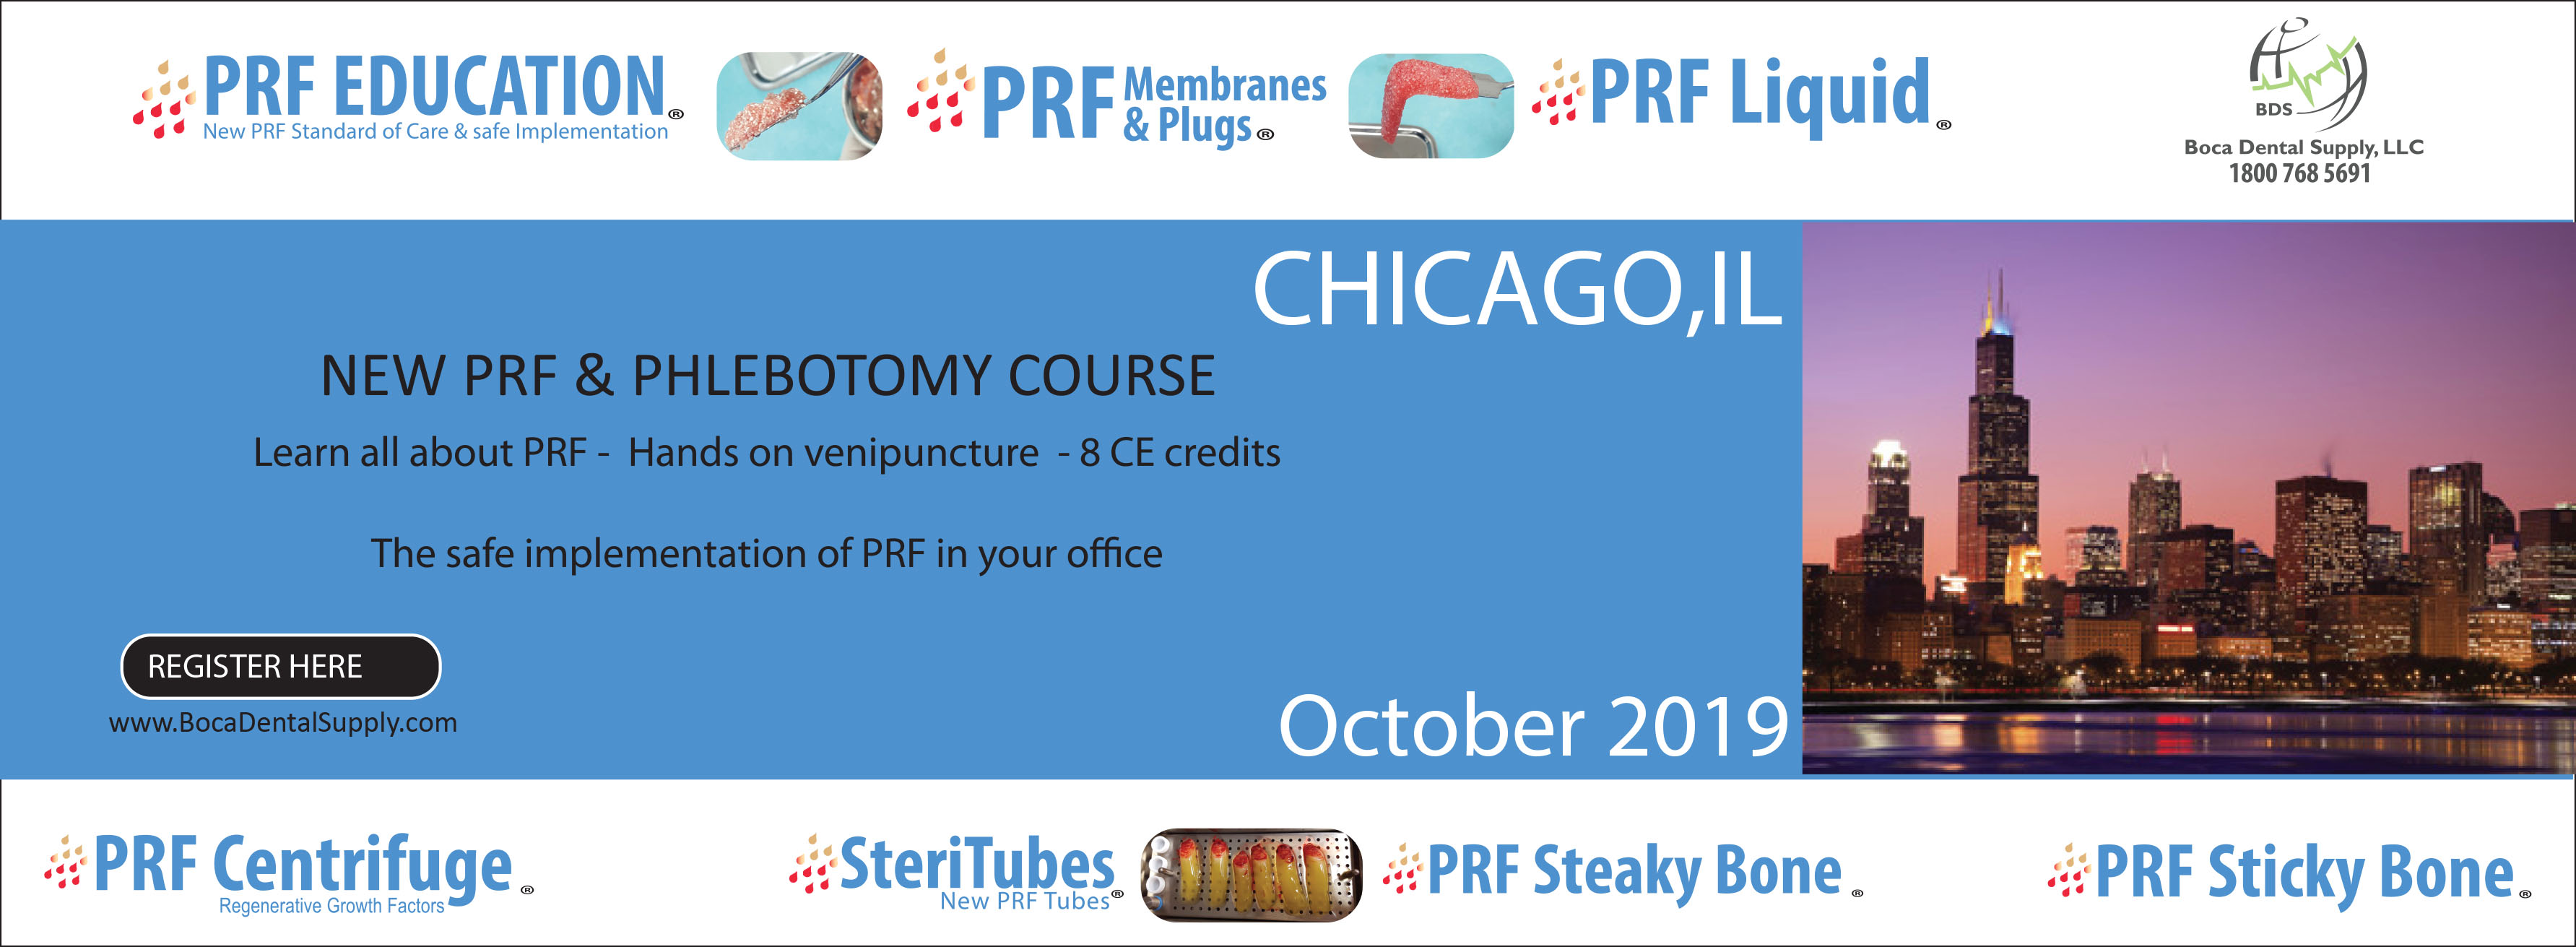 prf-course-chicago-2019-2.jpg